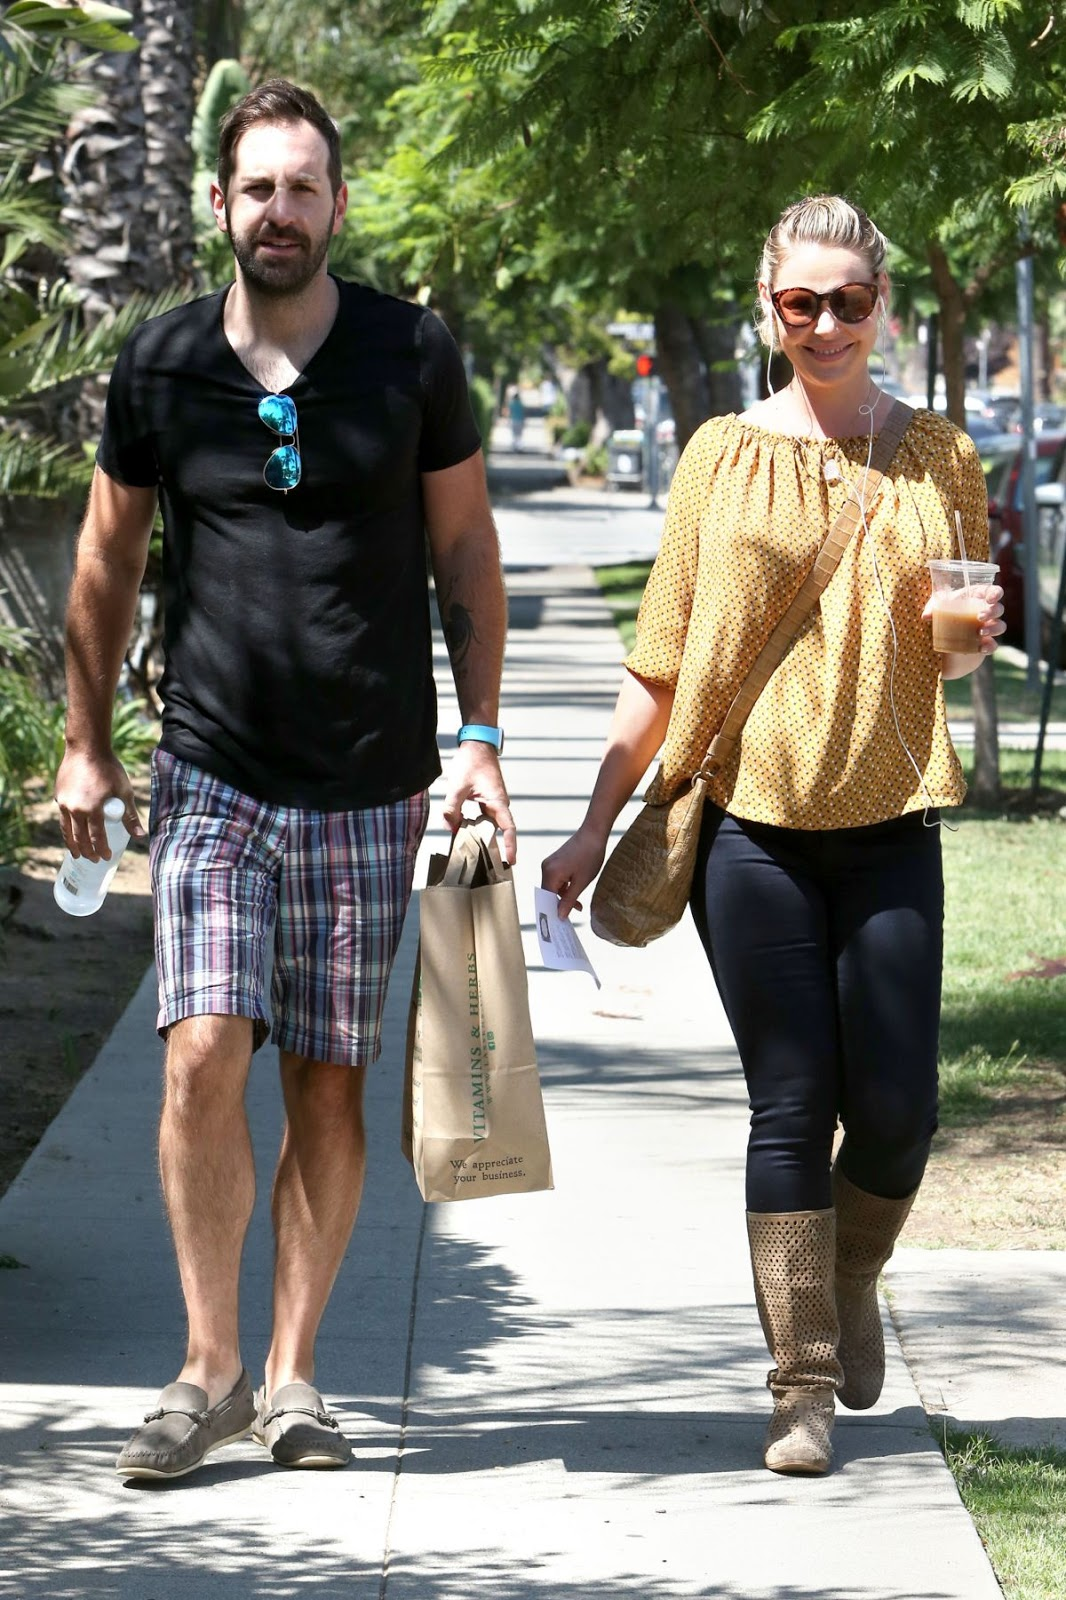 Photos of 'State of Affairs' actress Katherine Heigl Out And About In Los Angeles